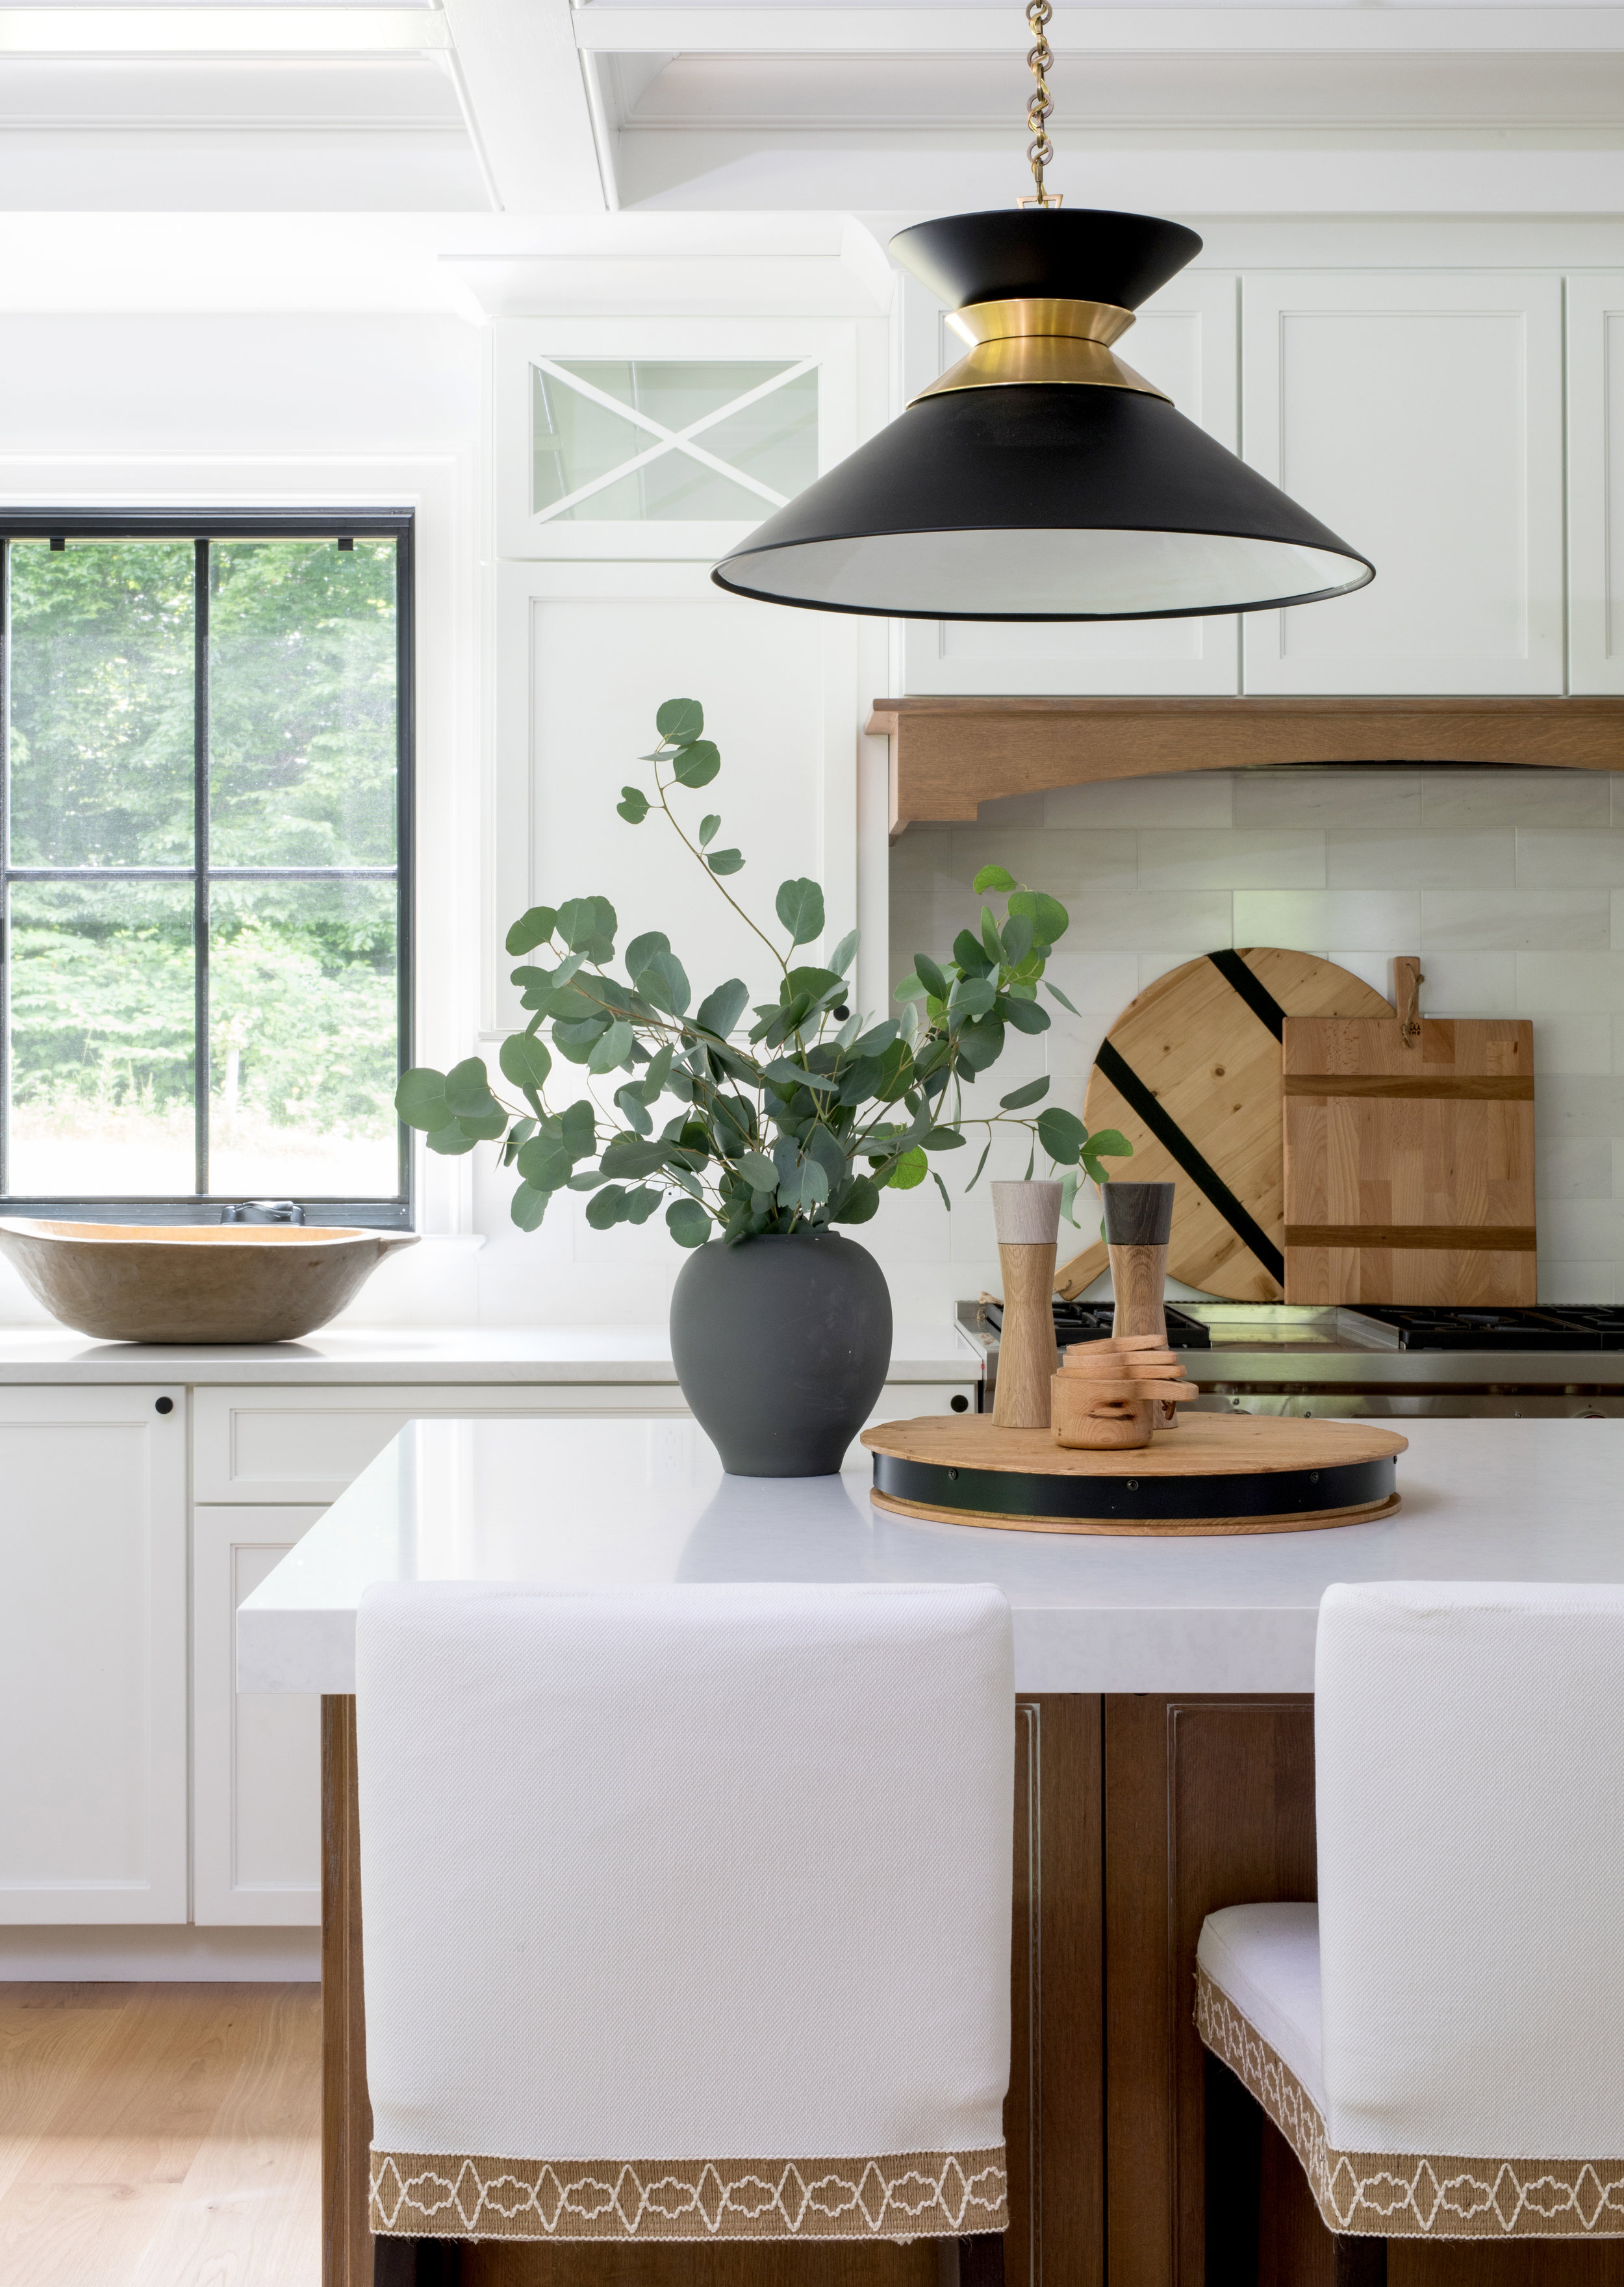 Kitchen Natural Wood Island White Cabinets Black Hardware Black Pendant Lights Modern Farmhouse Kitchen Black Windows Coffered Ceilings Stephanie Kraus Designs